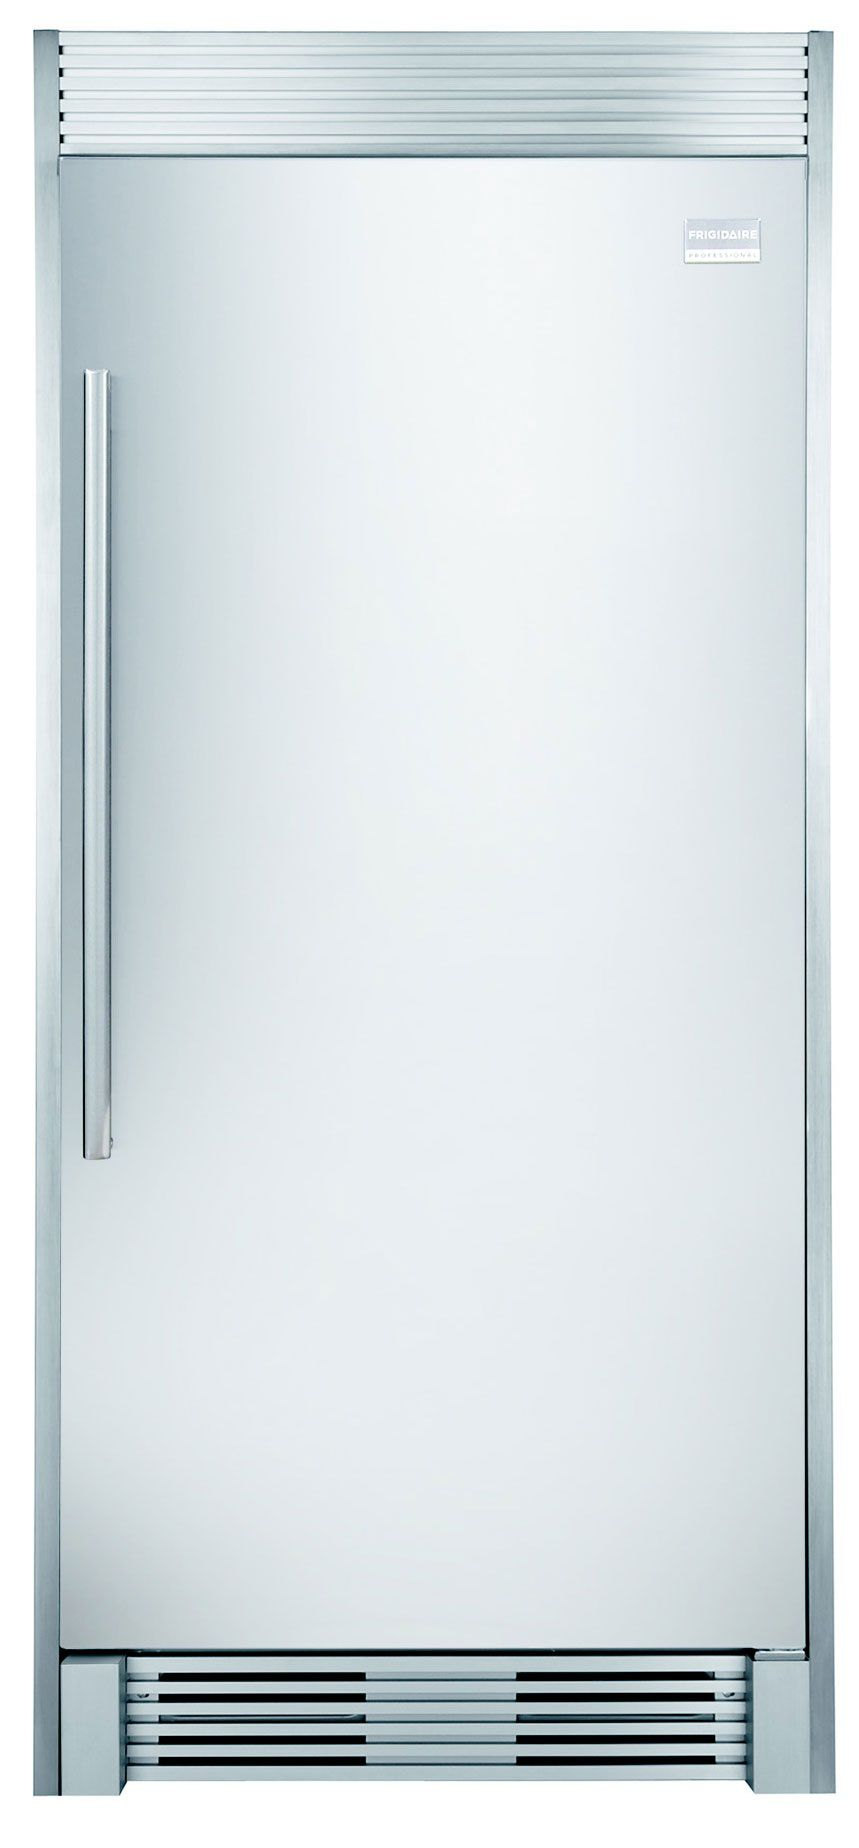 19.0 cu. ft. Freezerless Refrigerator, Stainless Steel                                                                           at mygofer.com